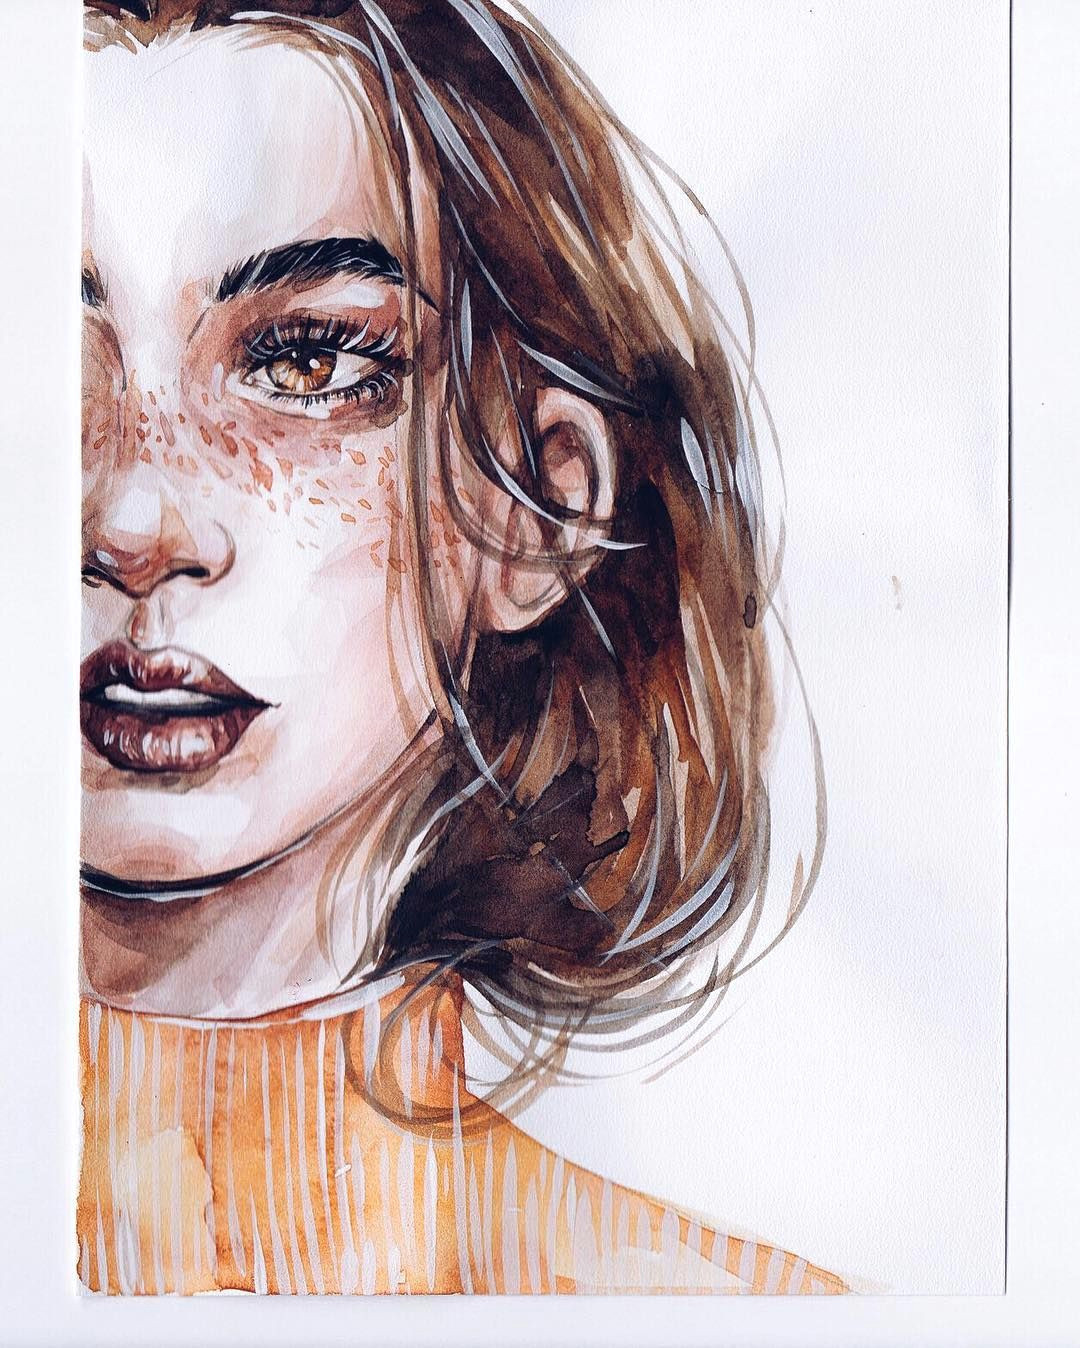 picture view art arts paint drawing drawings markers paintings creative sketch sketchbook sketchaday pencil myart artwork illustration graphic design